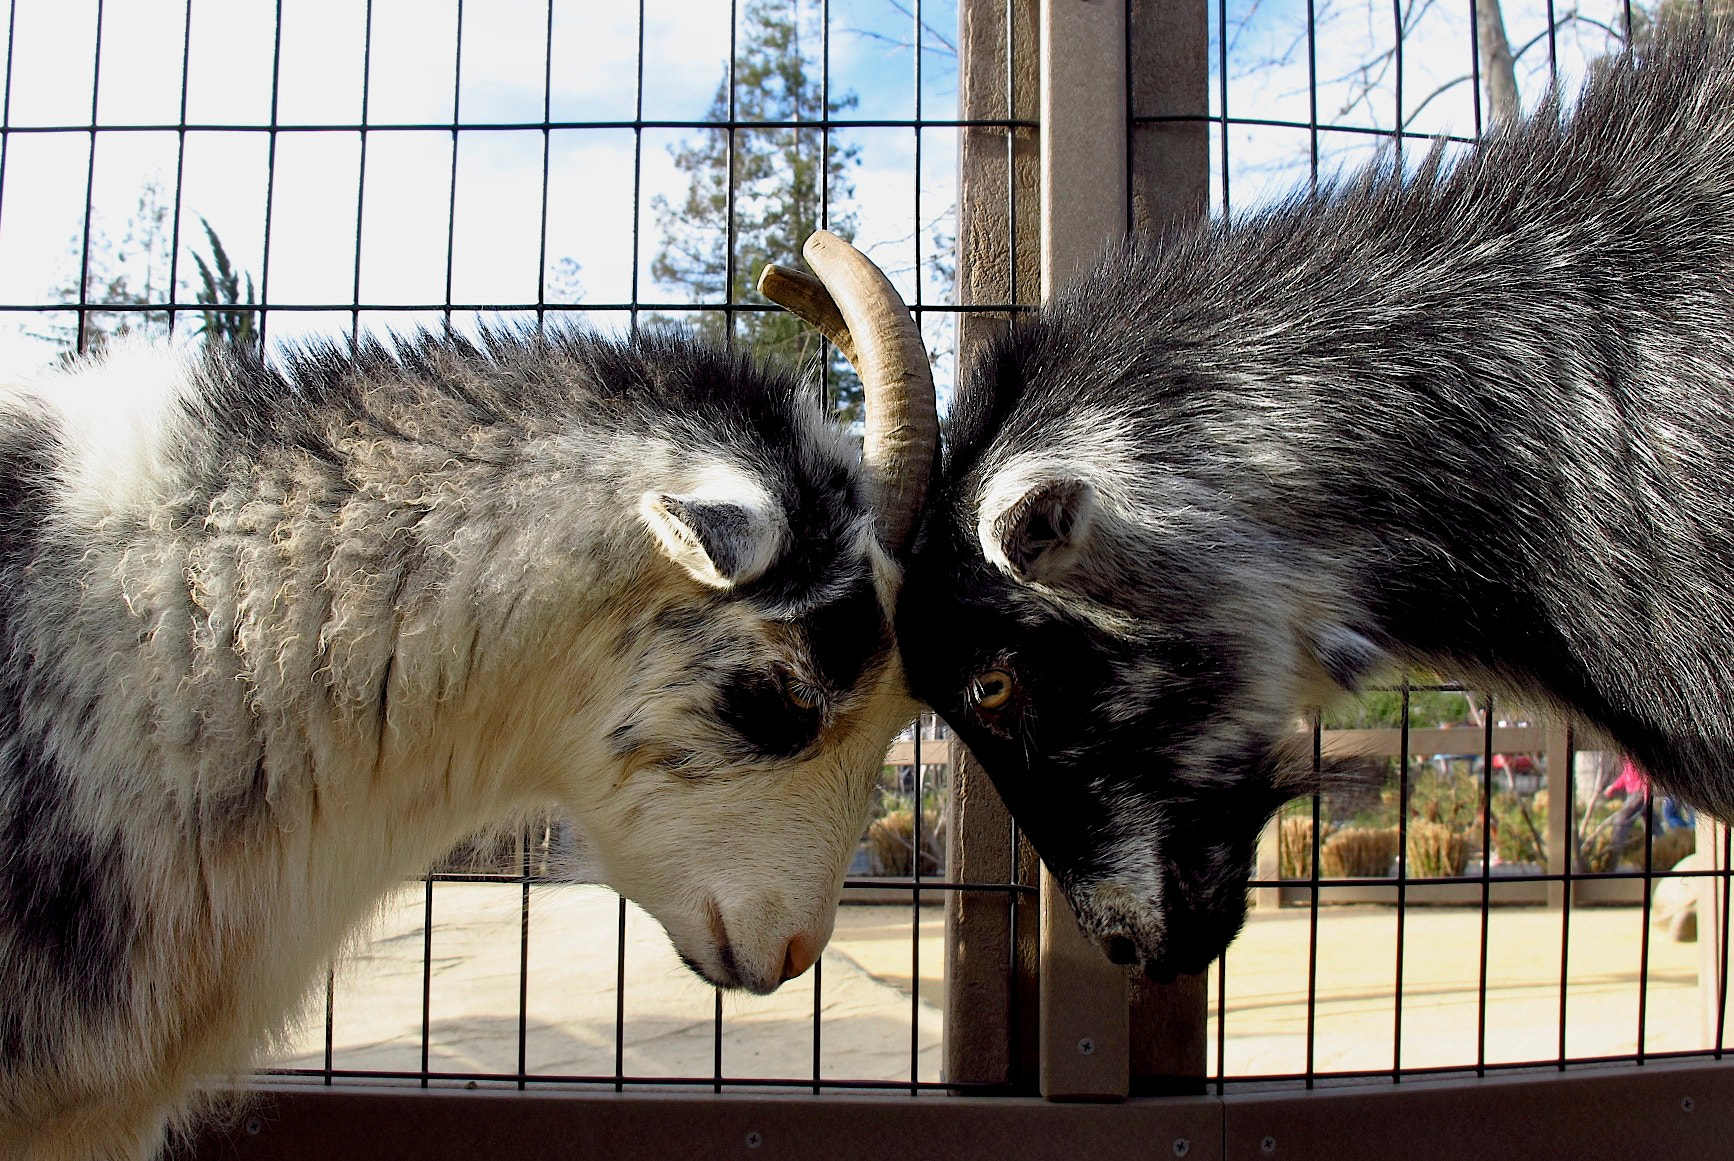 Photograph Petting Zoo by Leah Stohs on 500px